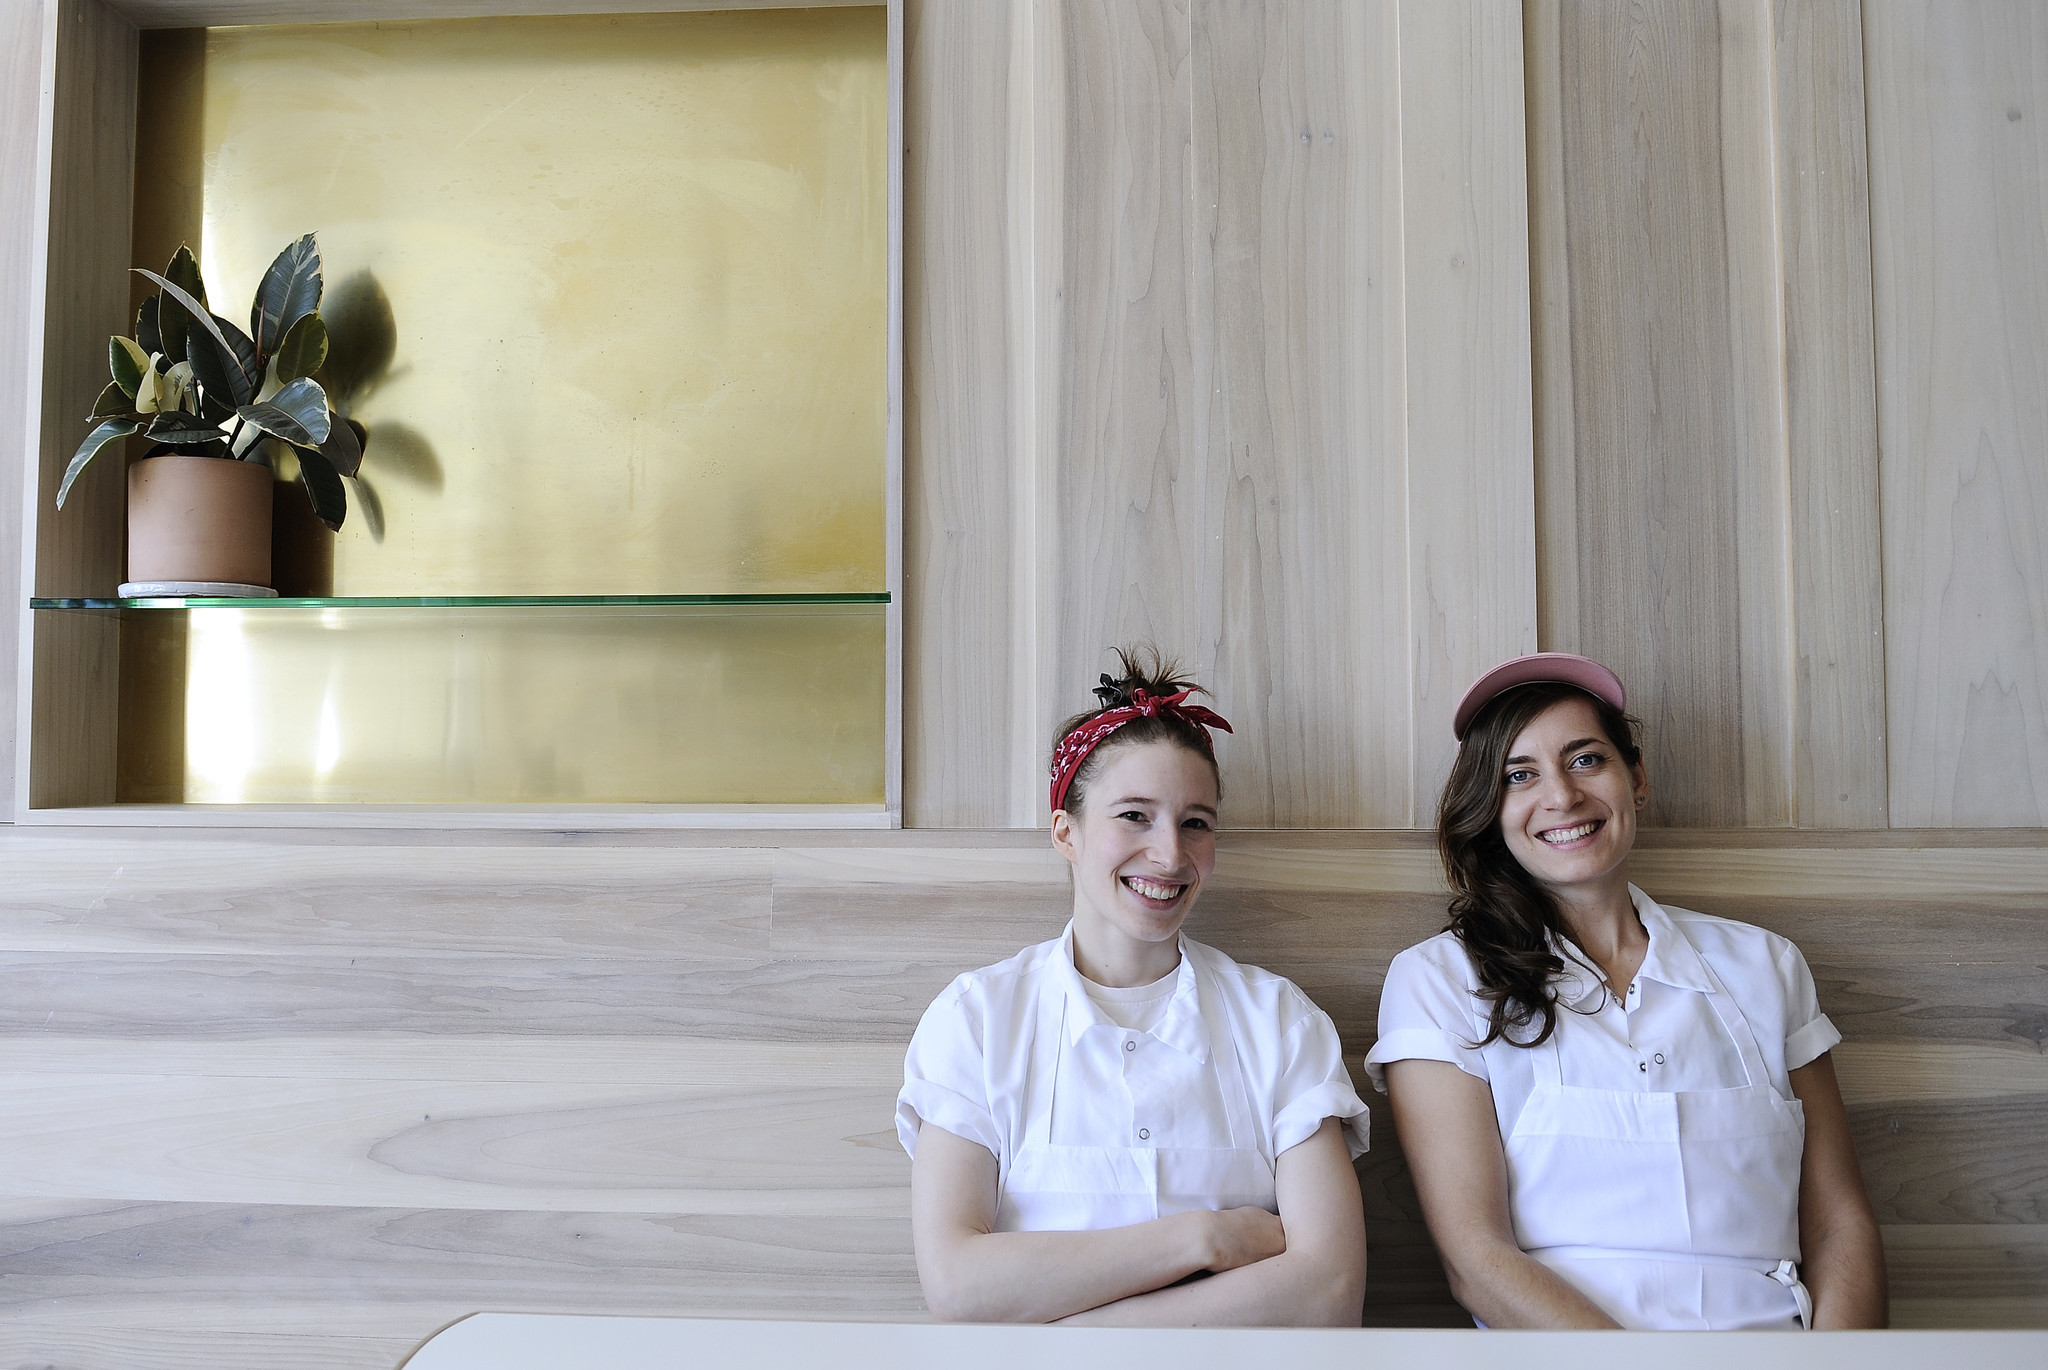 Sarah Hymanson, left, and Sara Kramer are chefs and co-owners of Kismet in Los Feliz. They also run Madcapra in Grand Central Market.